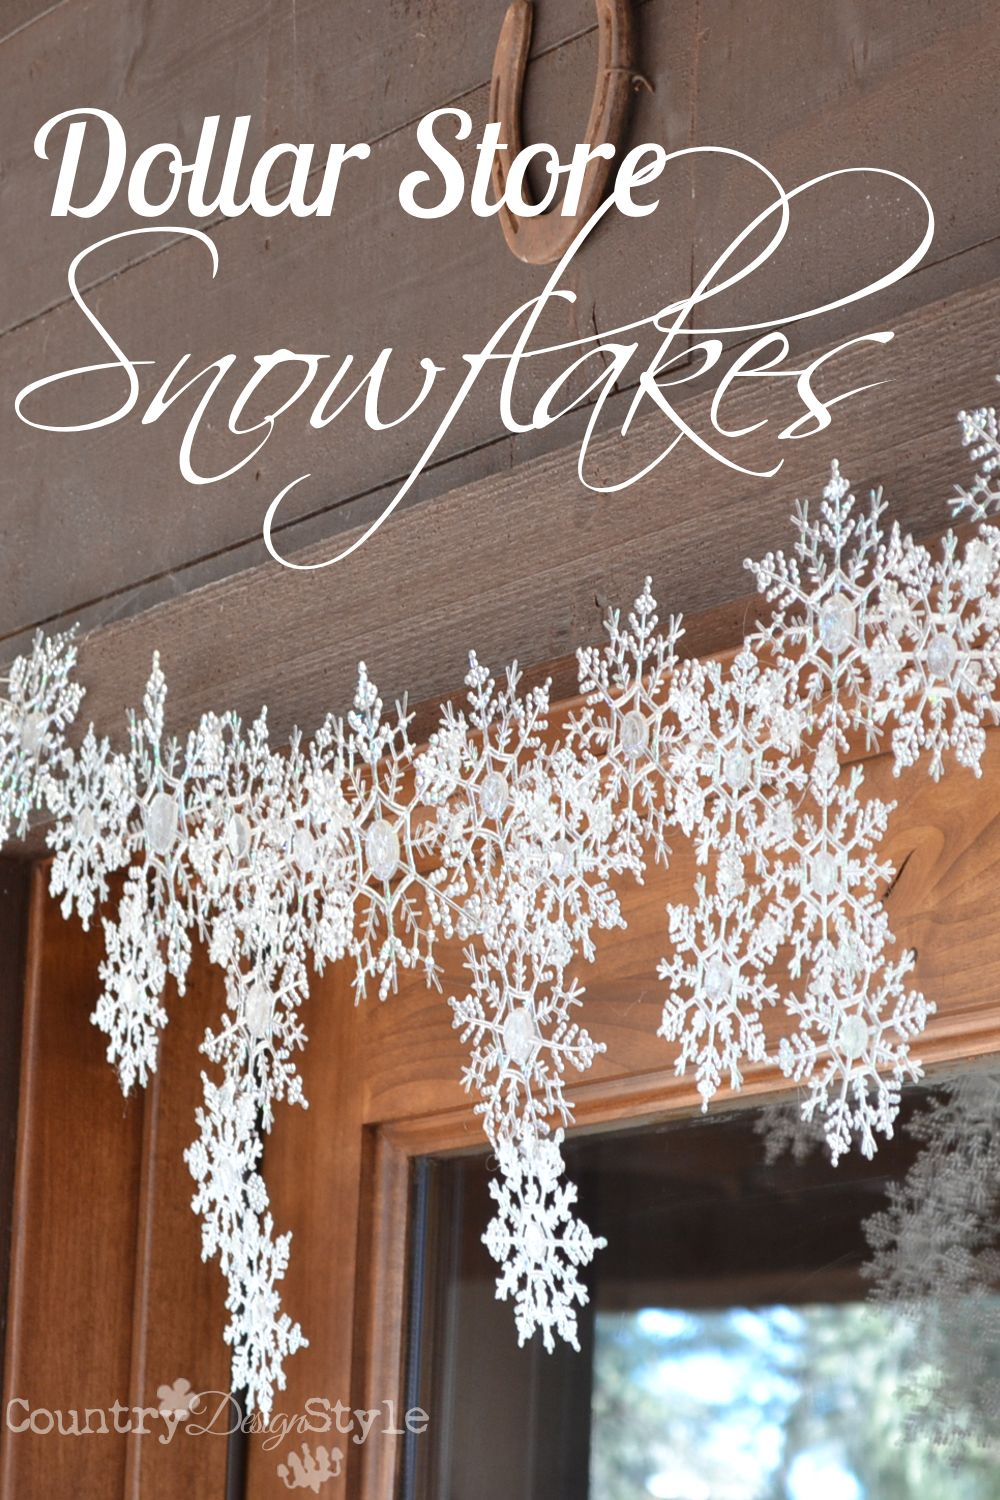 If you hot glue dollar store snowflakes, do they melt